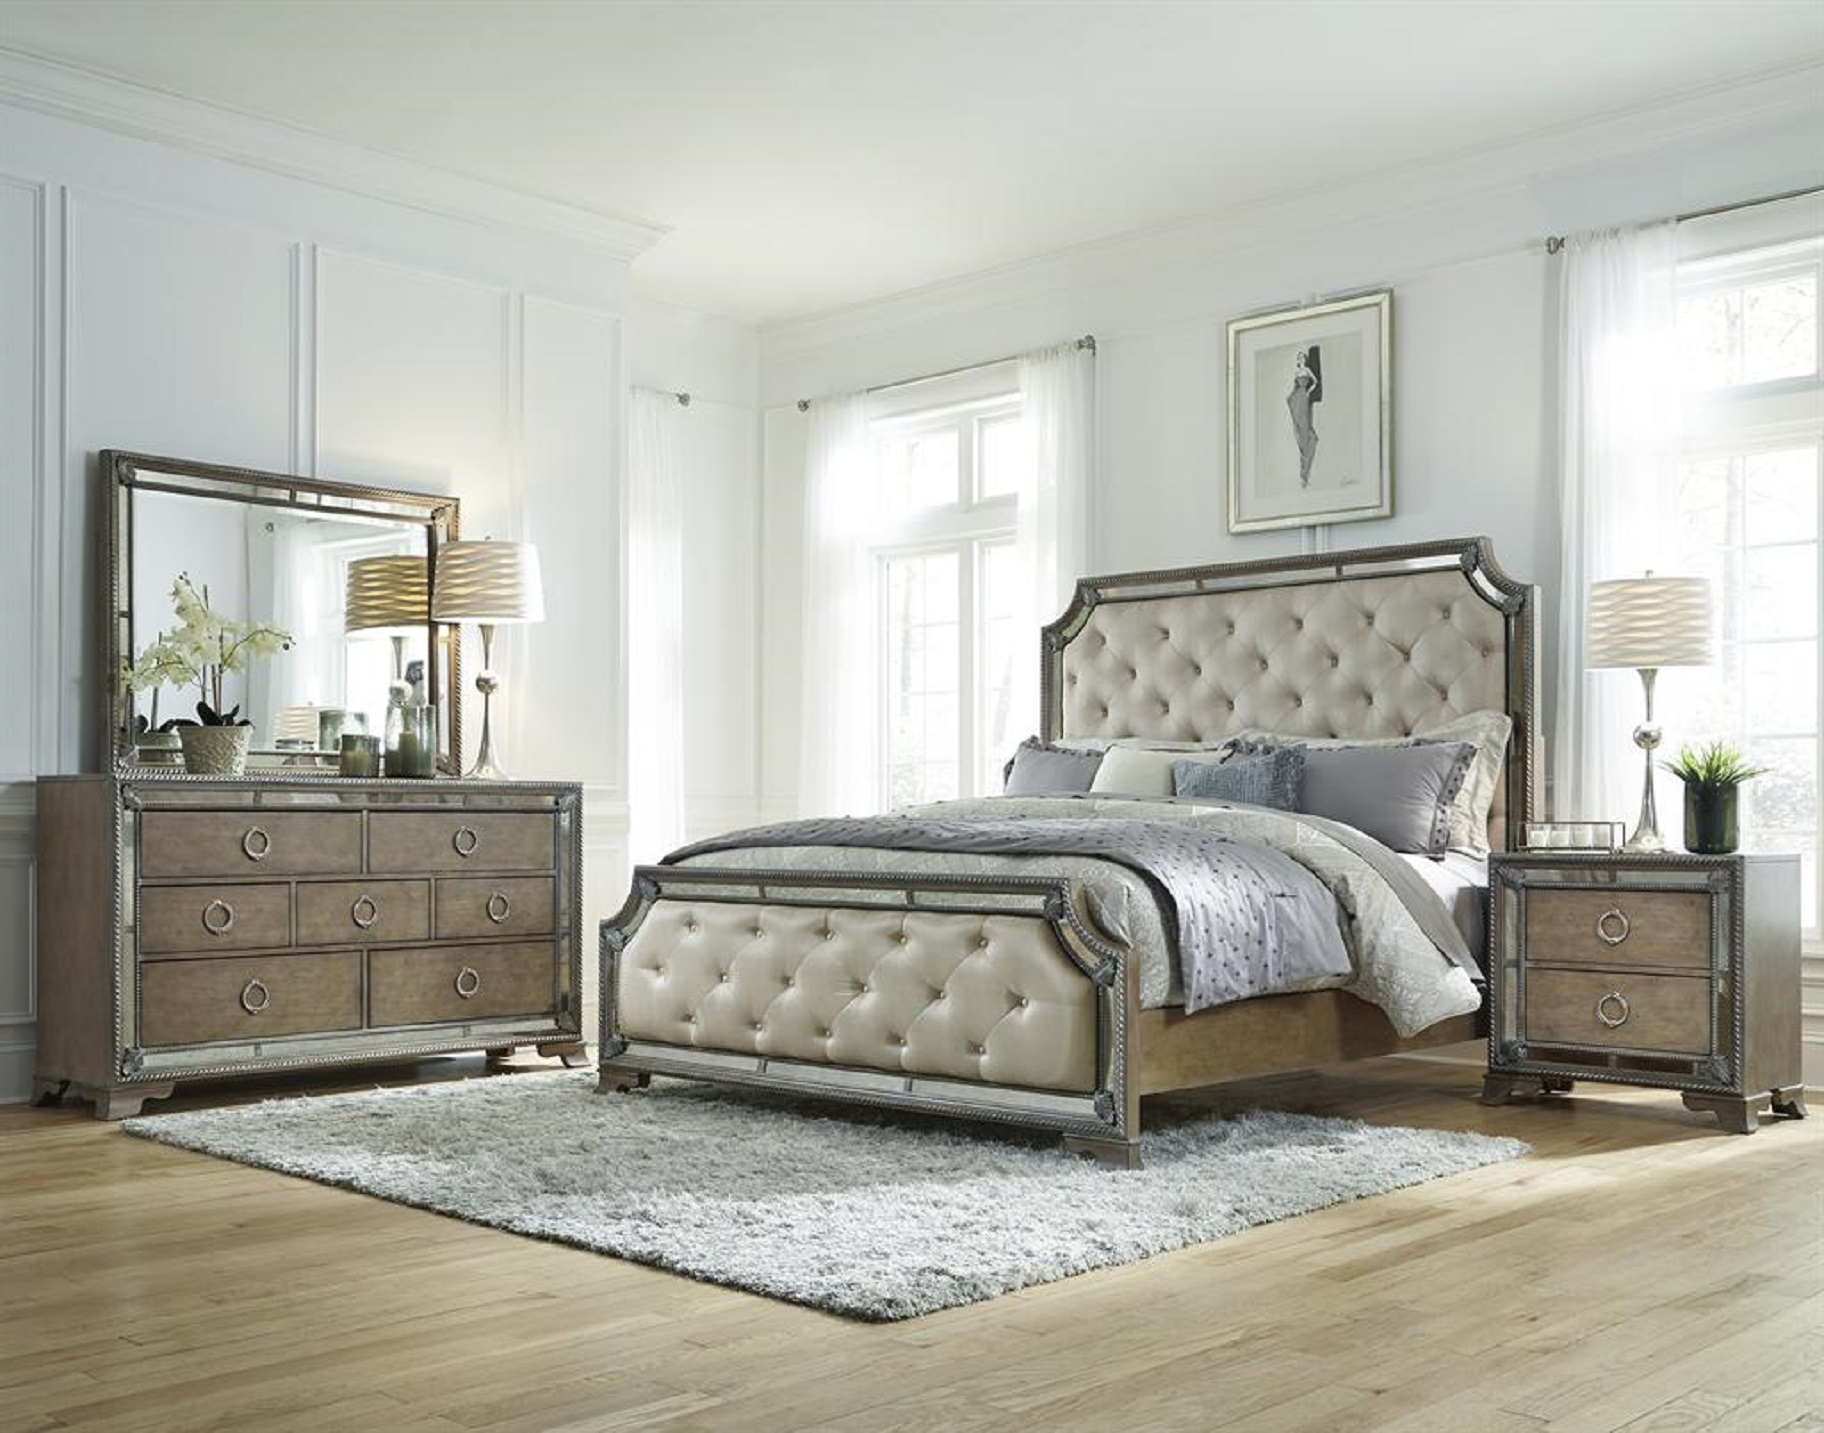 luxury mirrored bedroom furniture photo - 10